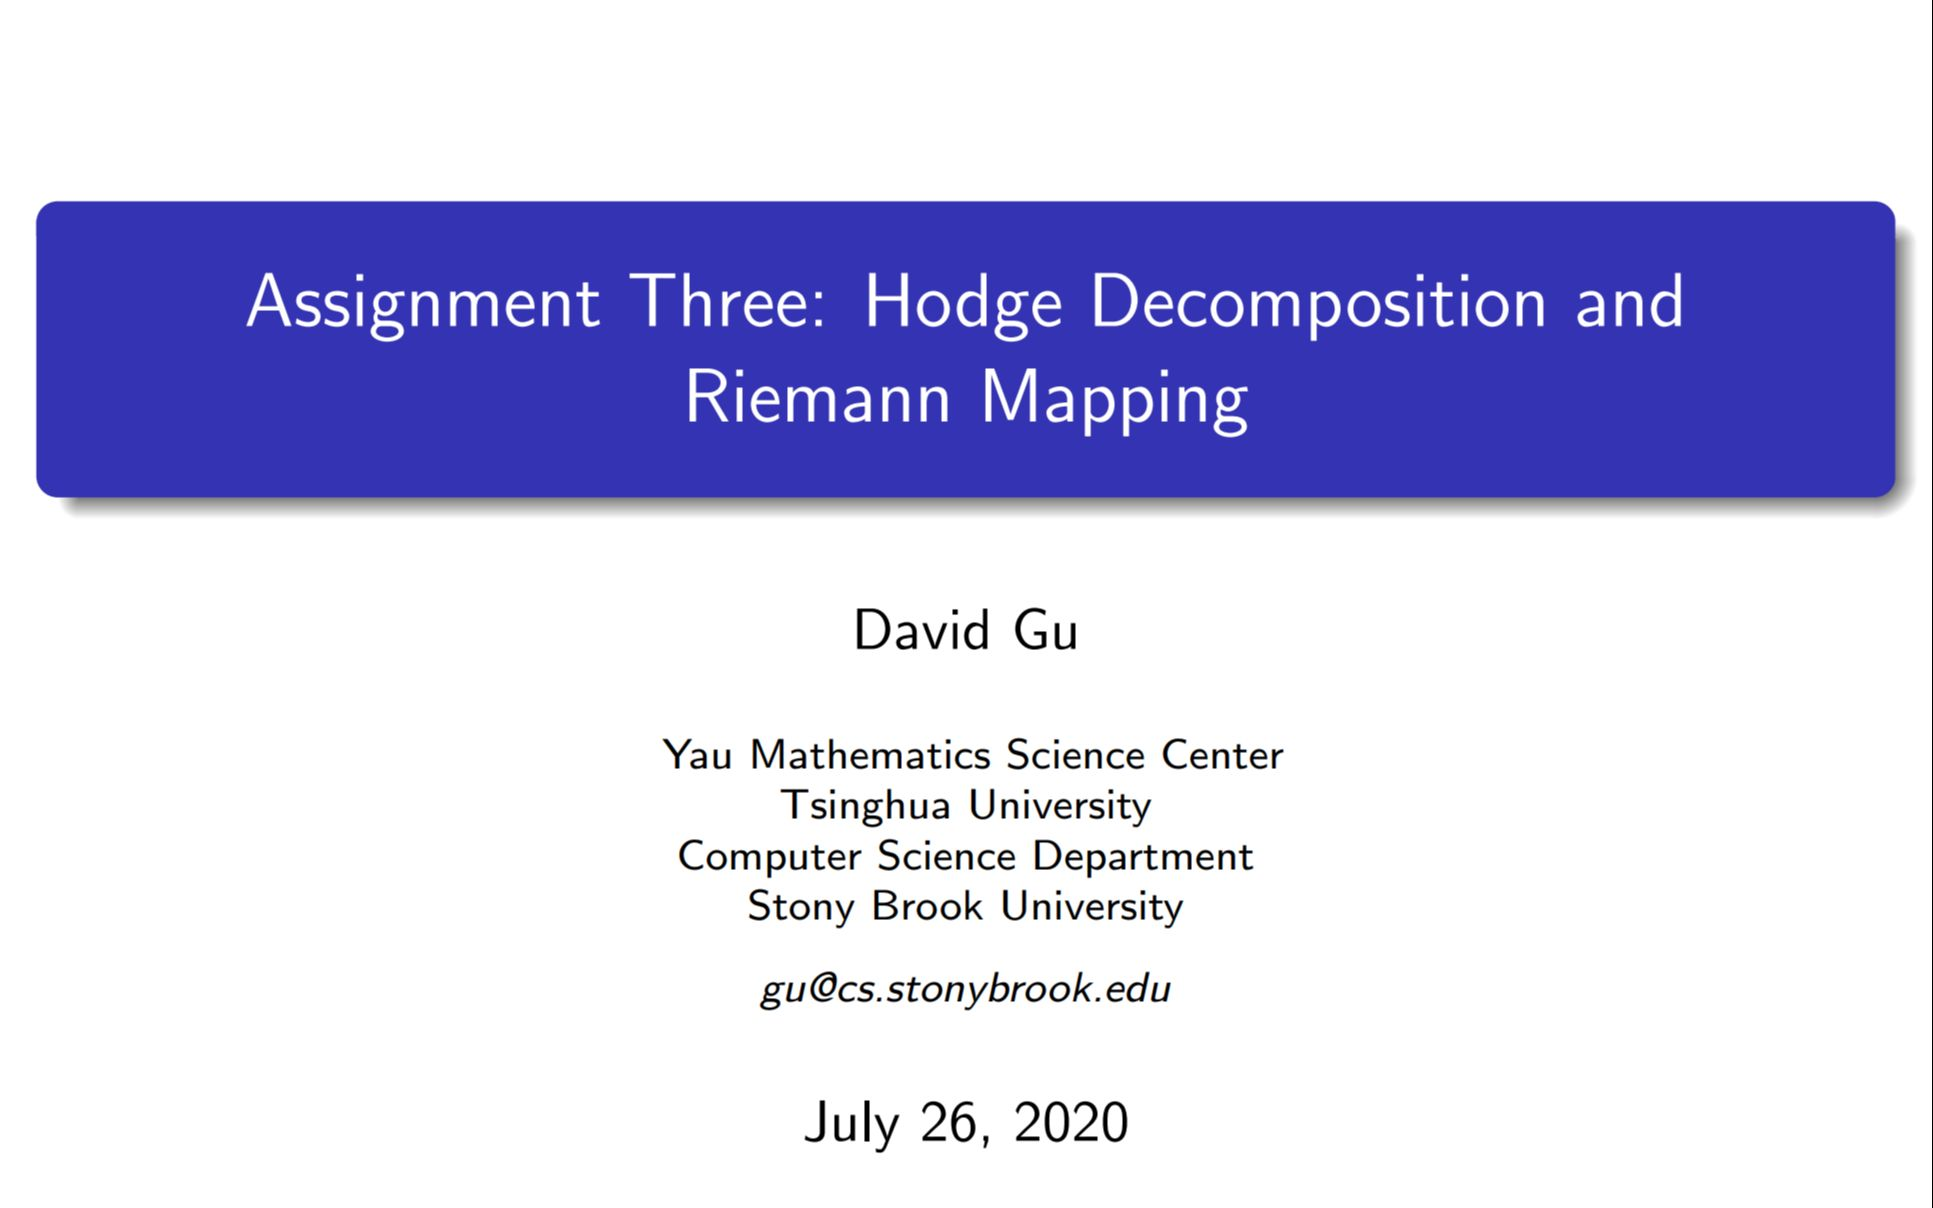 Assignment 3 - Hodge Decomposition and Riemann Mapping